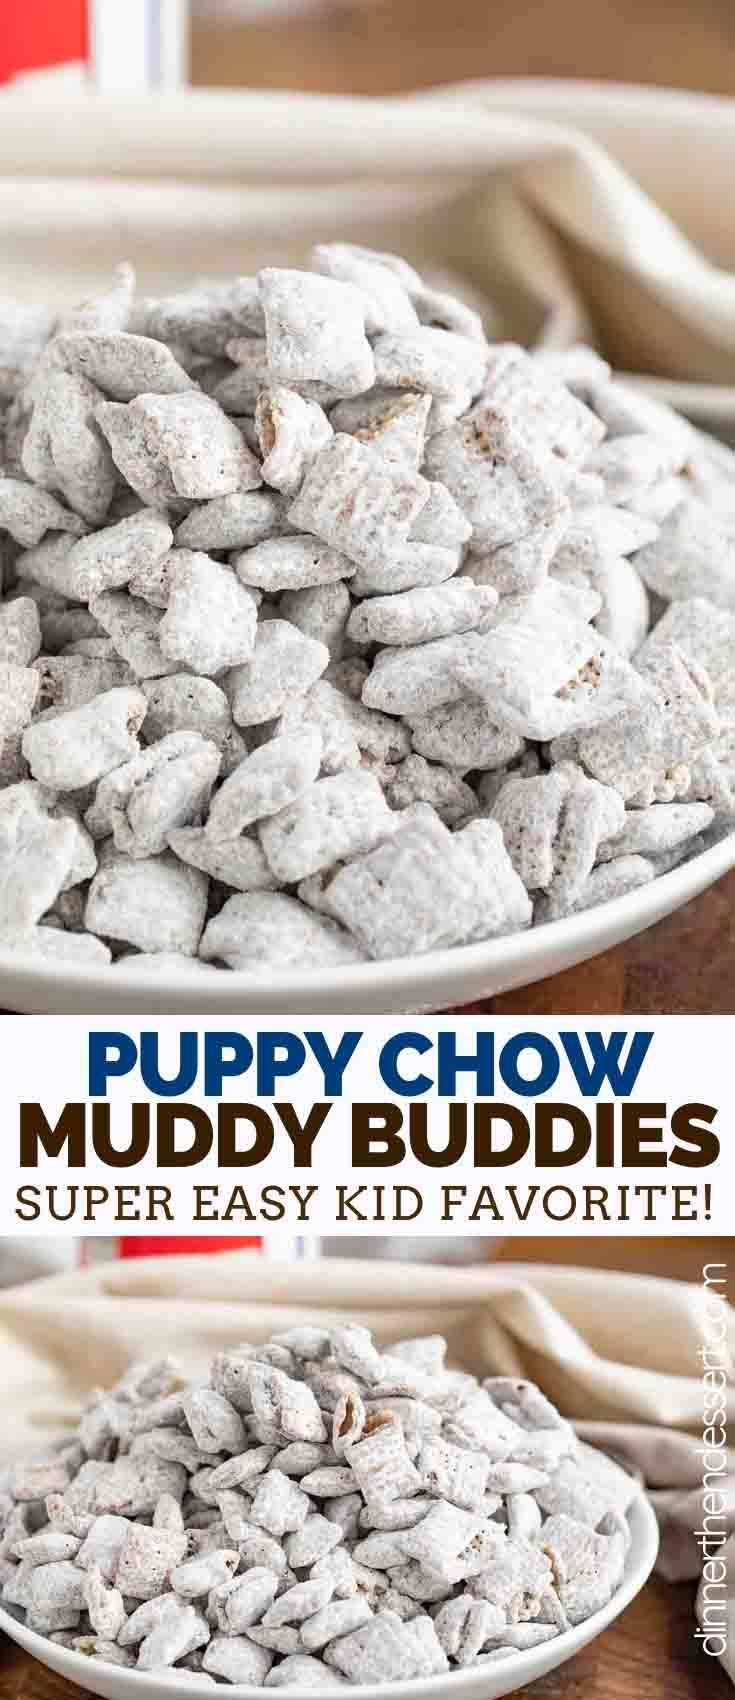 Puppy Chow Muddy Buddies Is The Perfect Sweet And Crunchy Party